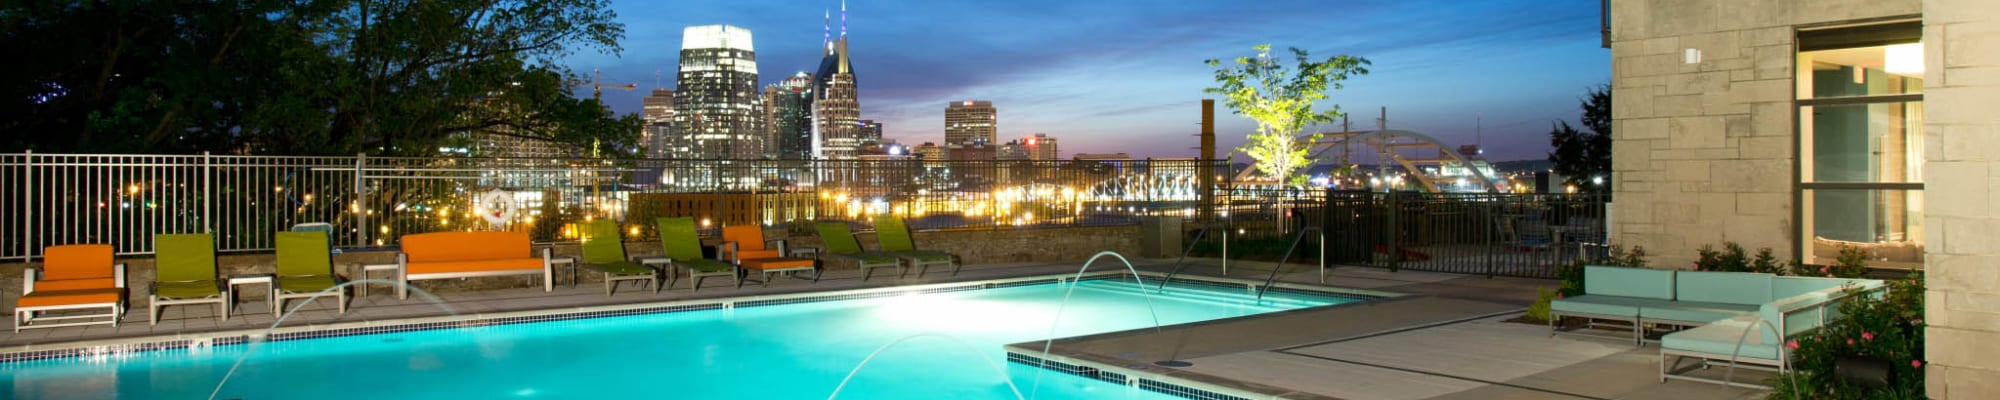 Schedule a Tour at City View Apartments in Nashville, Tennessee